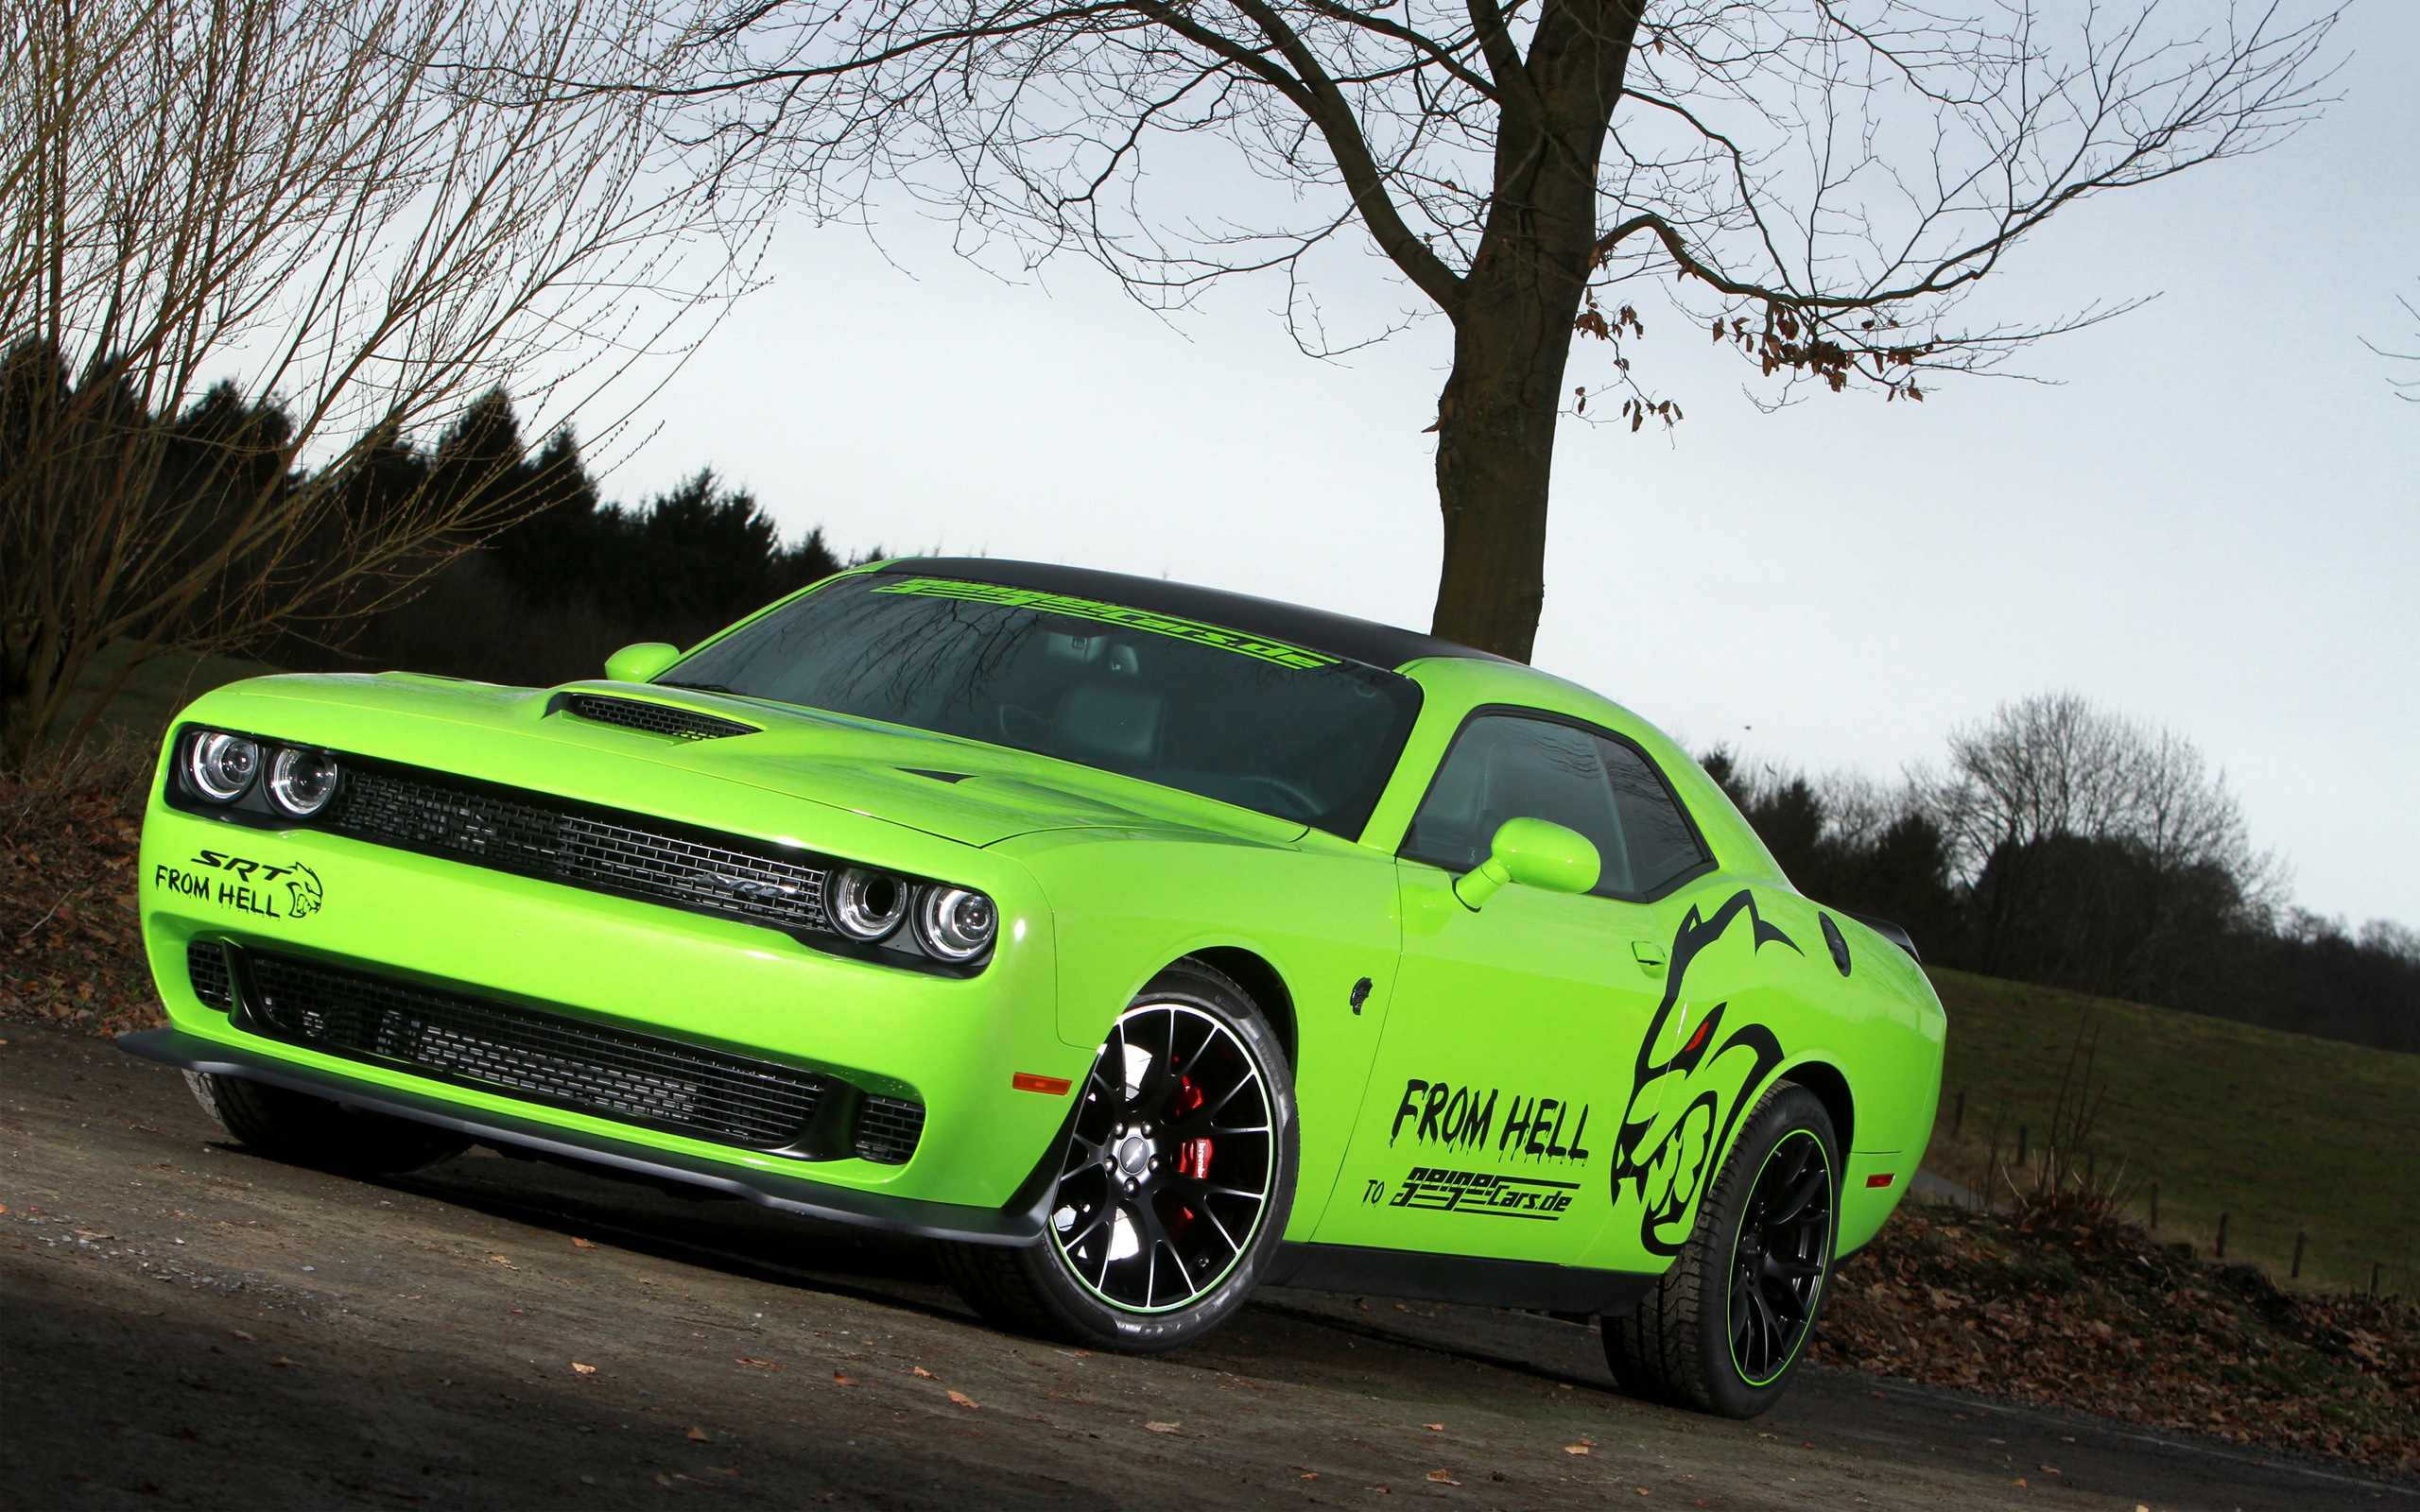 2015 Geigercars Dodge Challenger SRT Hellcat Wallpaper HD Car 2560x1600